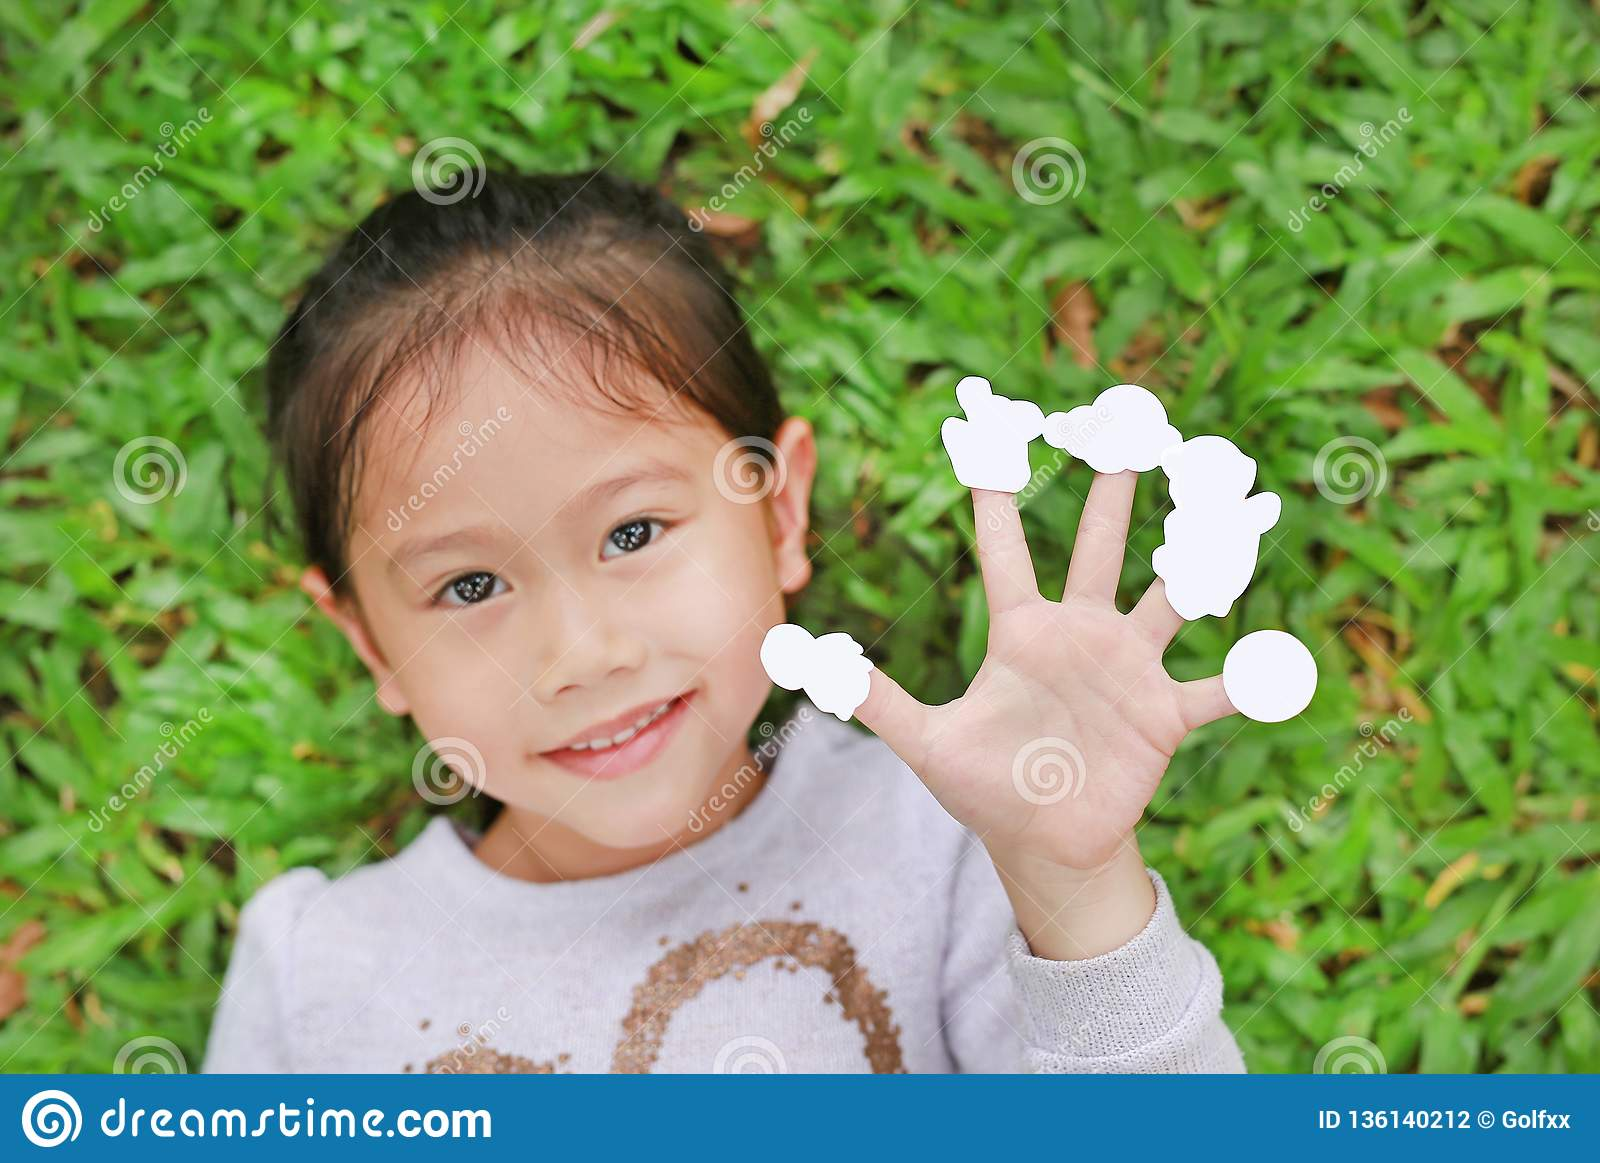 Cute little Asian kid girl lying on green grass lawn with showing empty white stickers on her fingers. Focus on hand